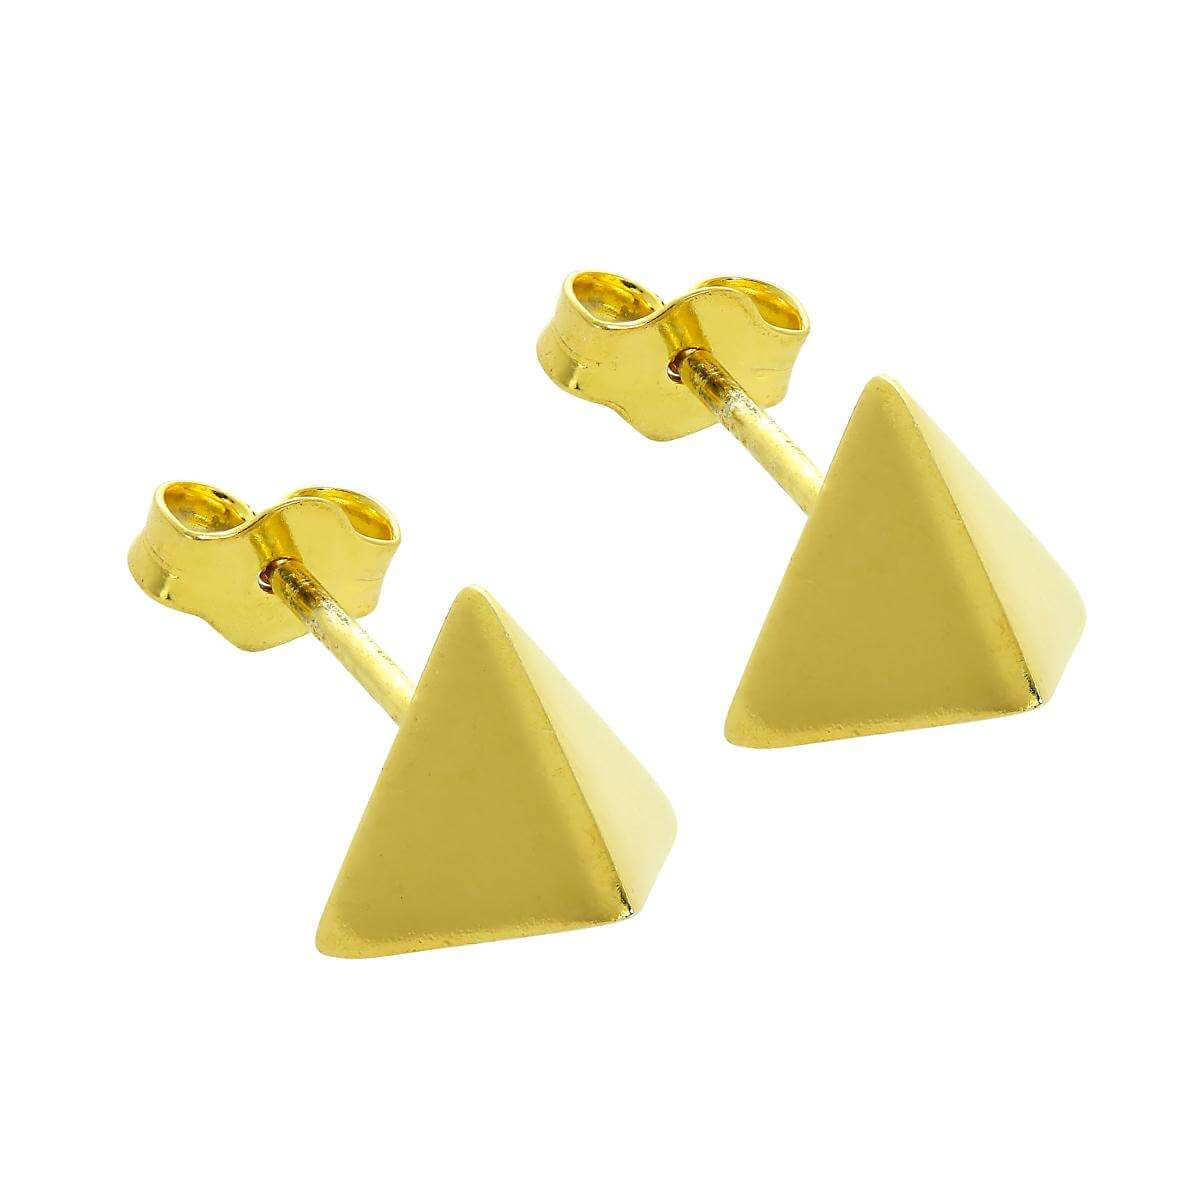 Gold Plated Sterling Silver Golden Pyramid Stud Earrings